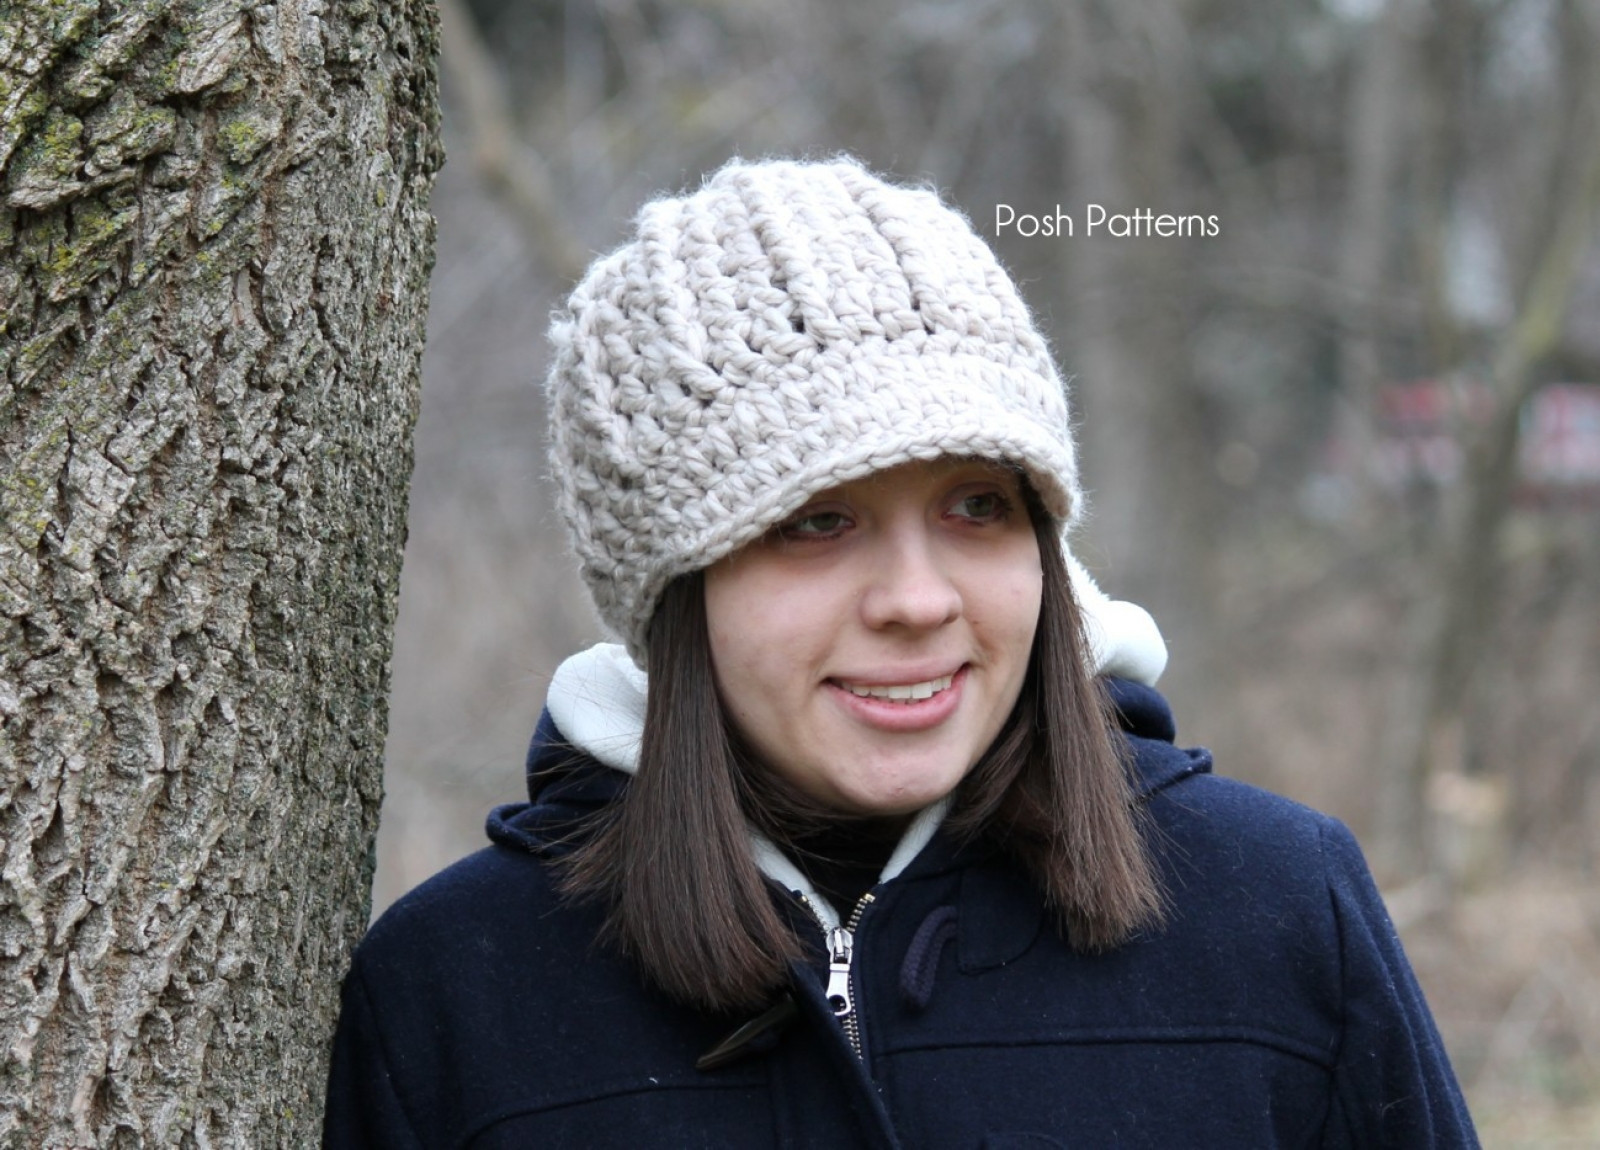 Unique Crochet Newsboy Hat Pattern Crochet Hat Patterns for Adults Of Fresh Give A Hoot Crocheted Hat Free Pattern for Kids and Adult Crochet Hat Patterns for Adults